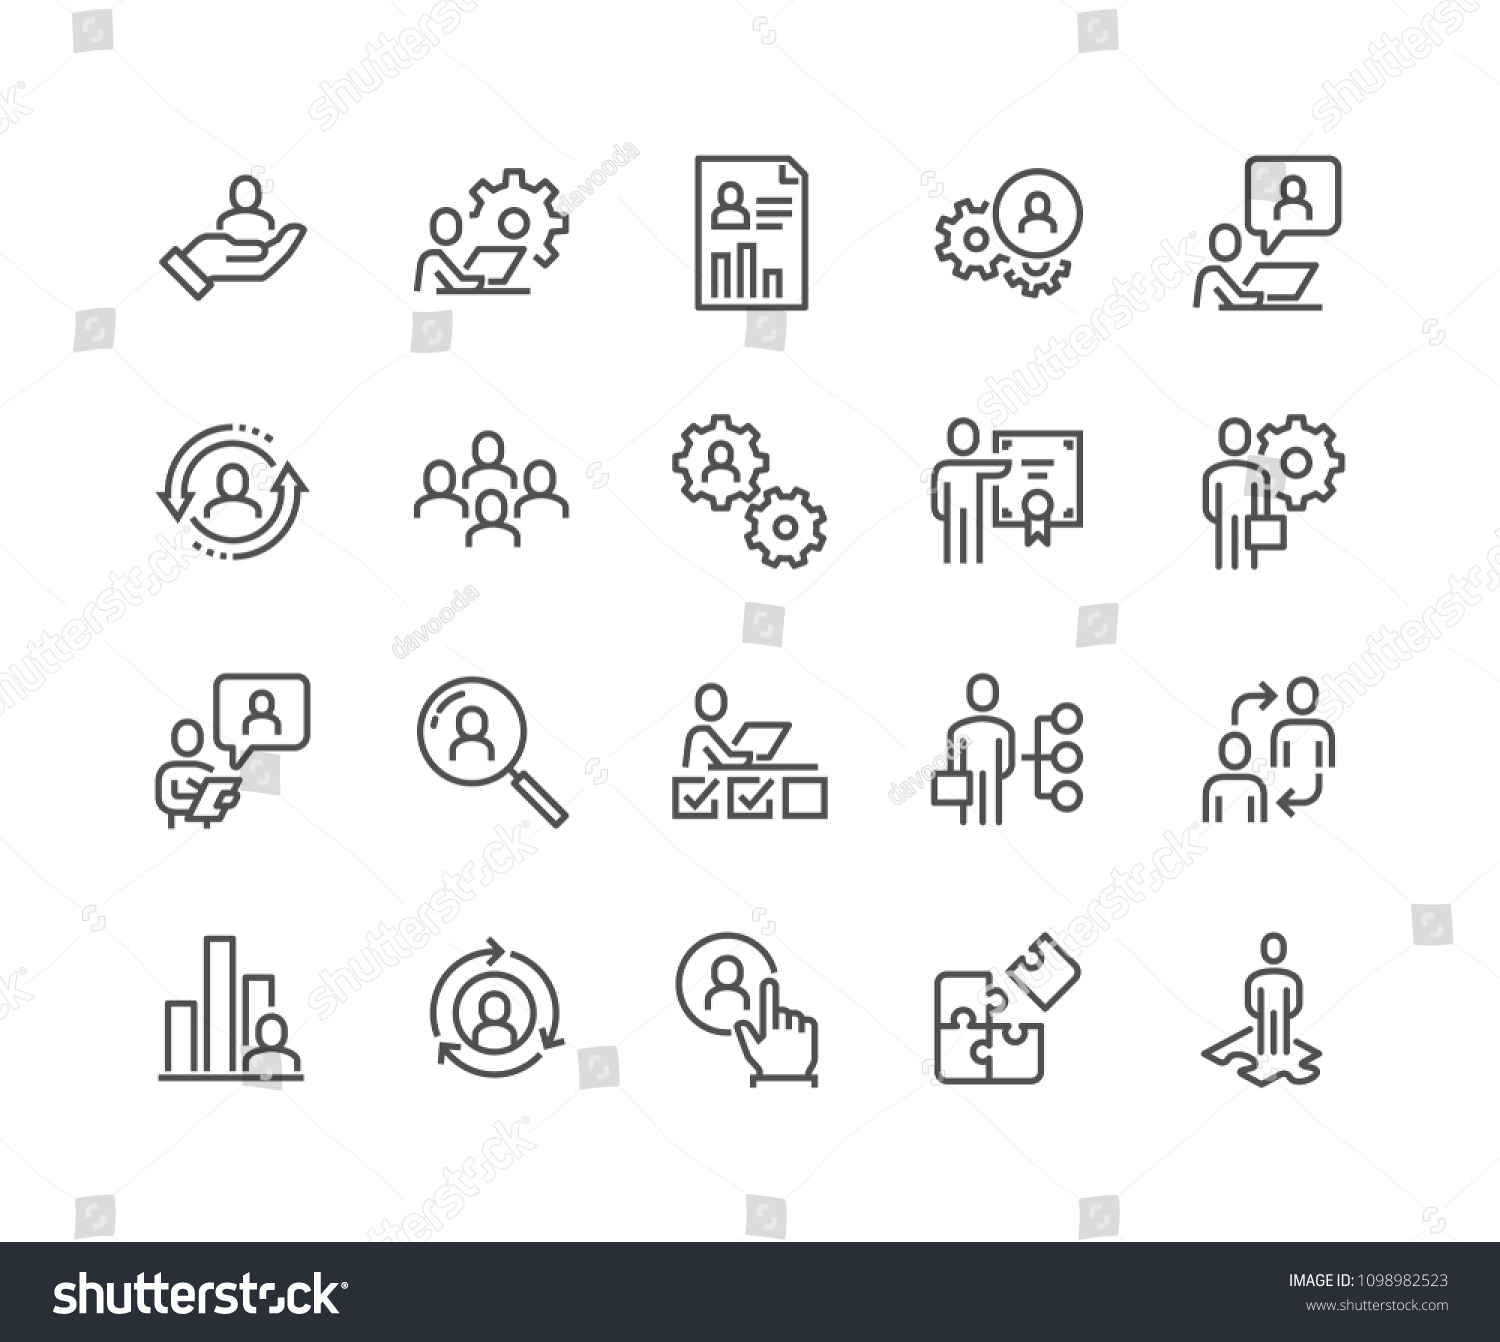 Simple Set of Business Management Related Vector Line Icons.  Contains such Icons as Inspector, Personal Quality, Employee Management and more. Editable Stroke. 48x48 Pixel Perfect. #1098982523